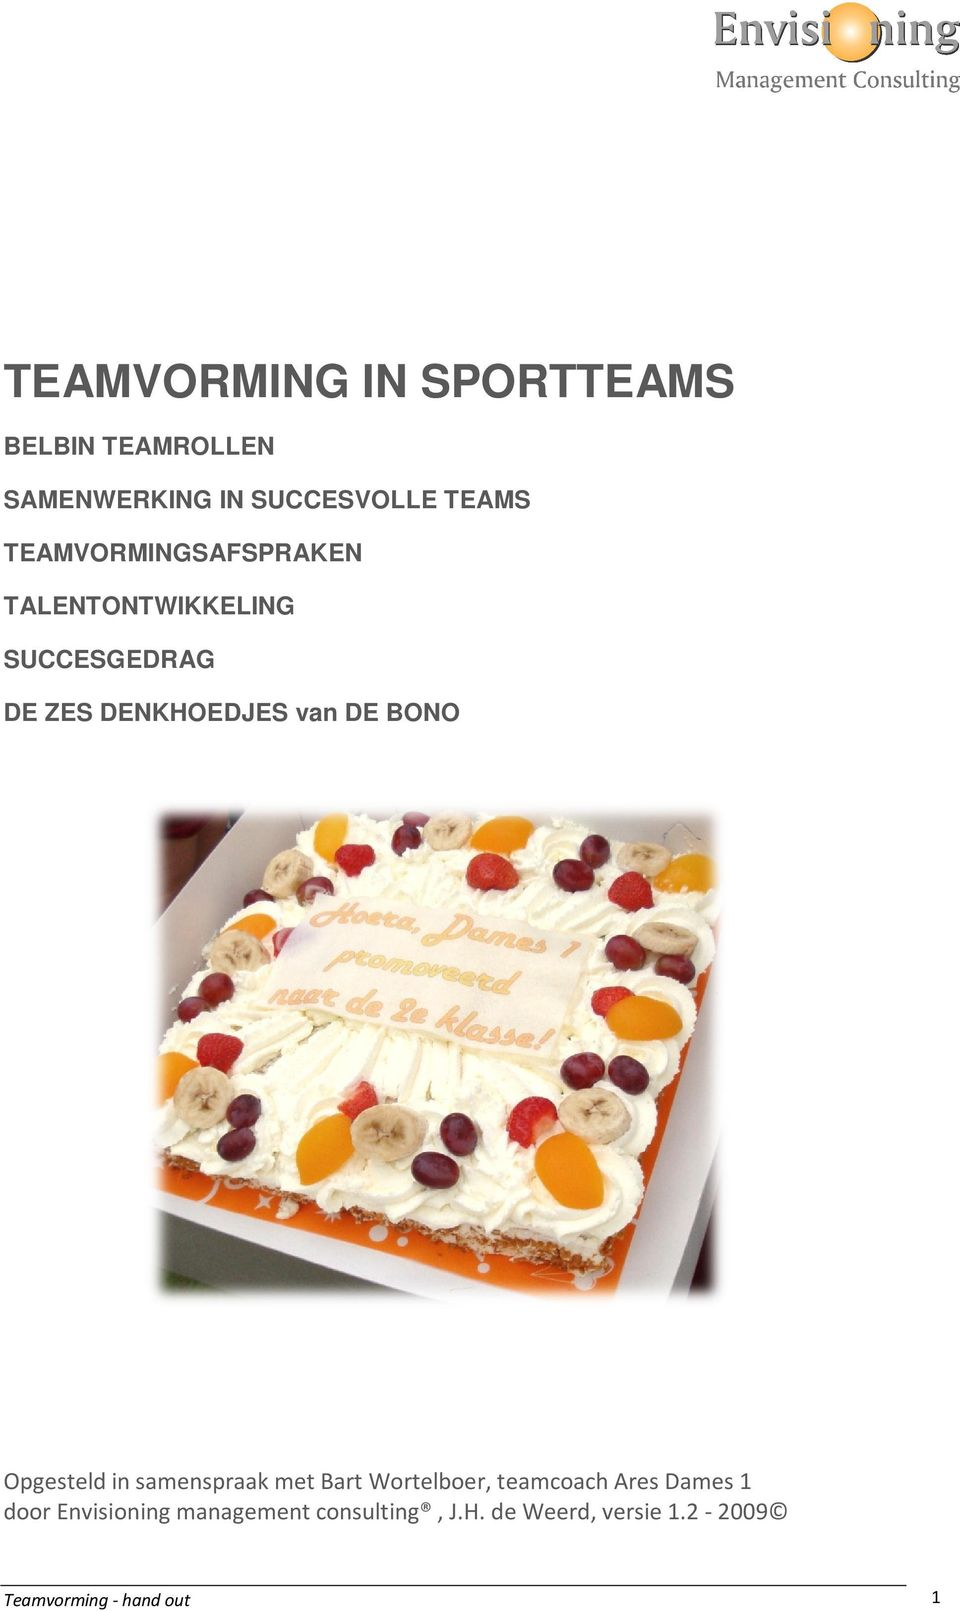 BONO Opgesteld in samenspraak met Bart Wortelboer, teamcoach Ares Dames 1 door